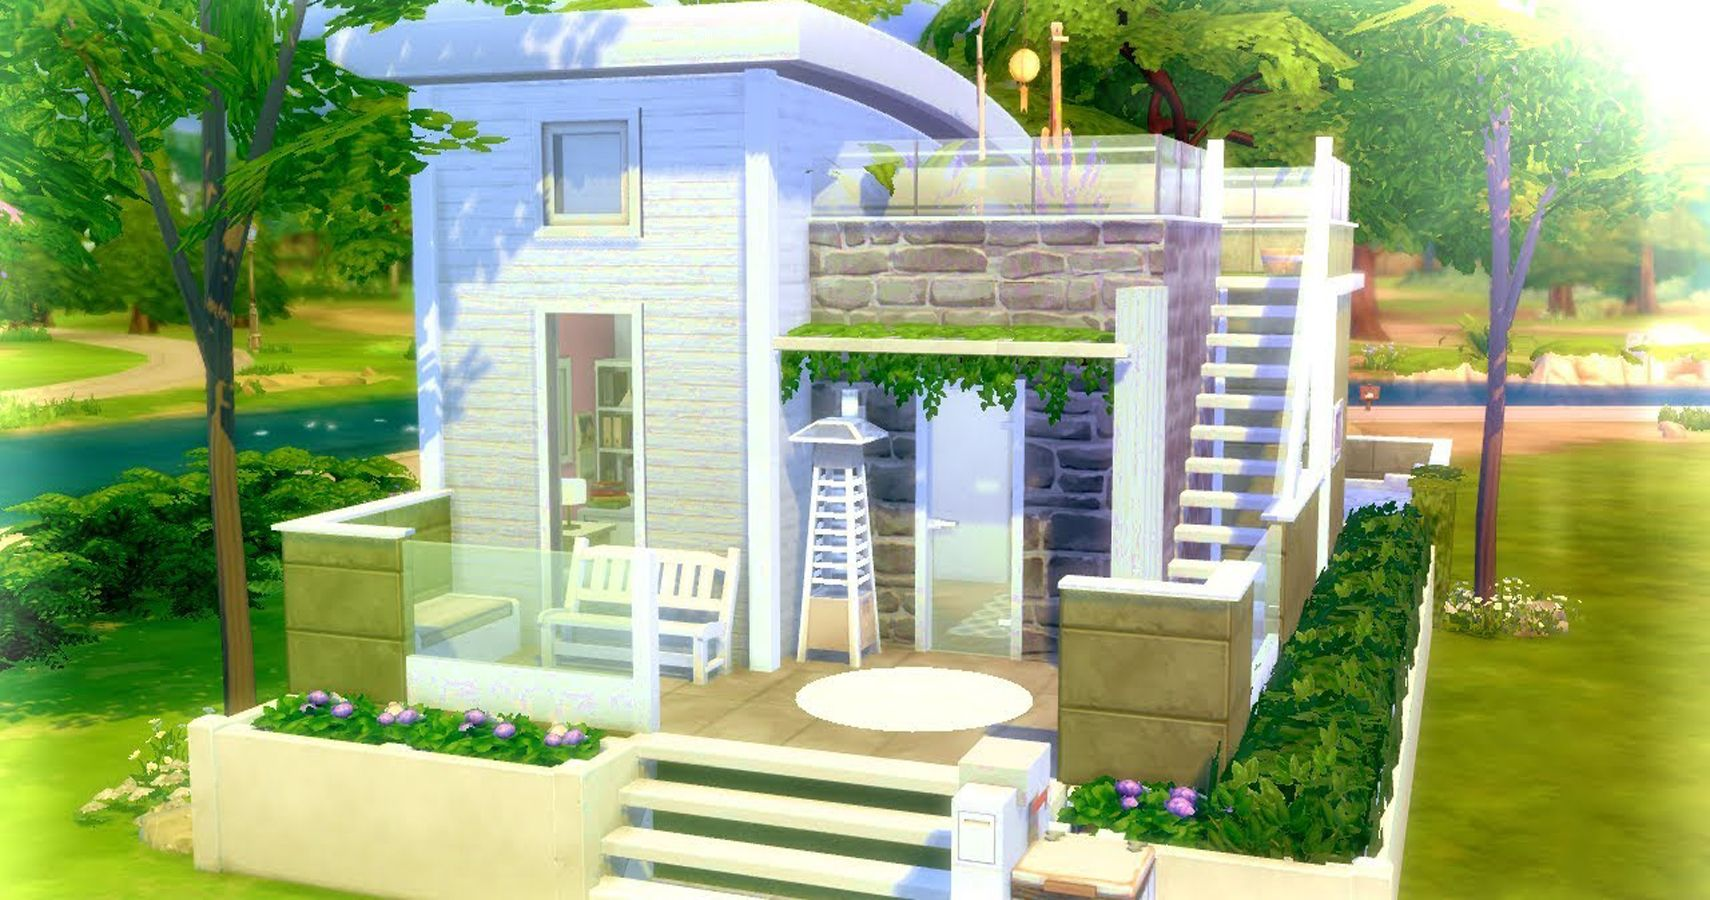 Sims 24: 24 Completely Functional Tiny Homes (That Use No Custom